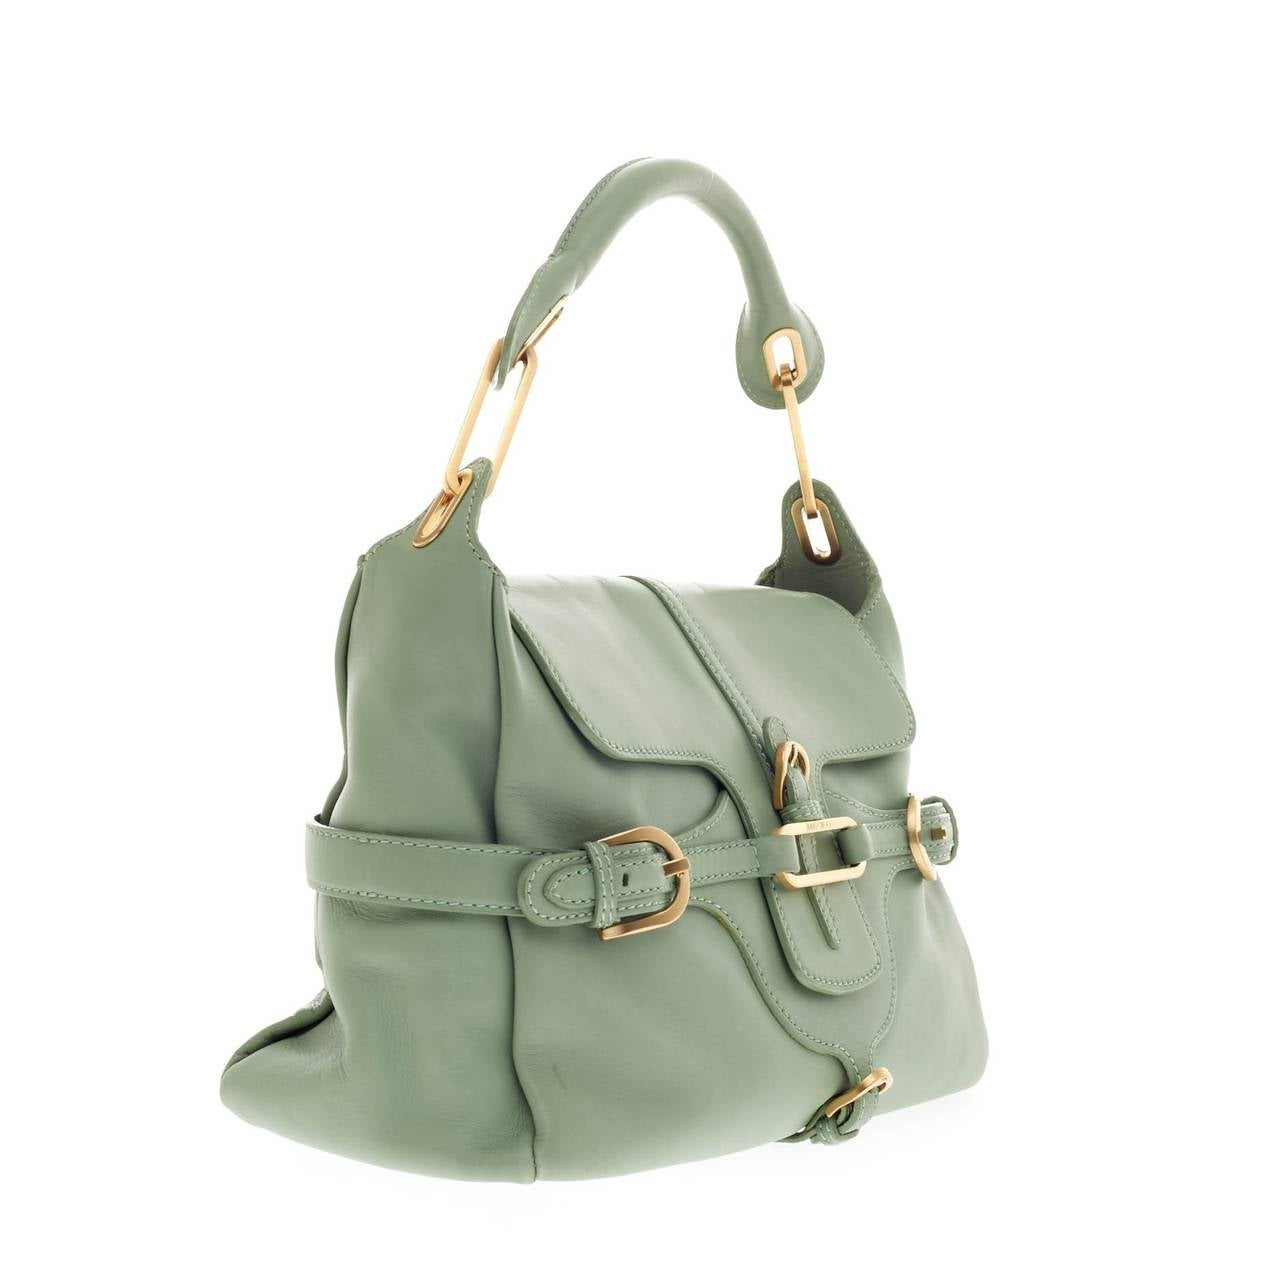 Jimmy Choo Tulita Shoulder Bag Leather In Good Condition For Sale In New York, NY